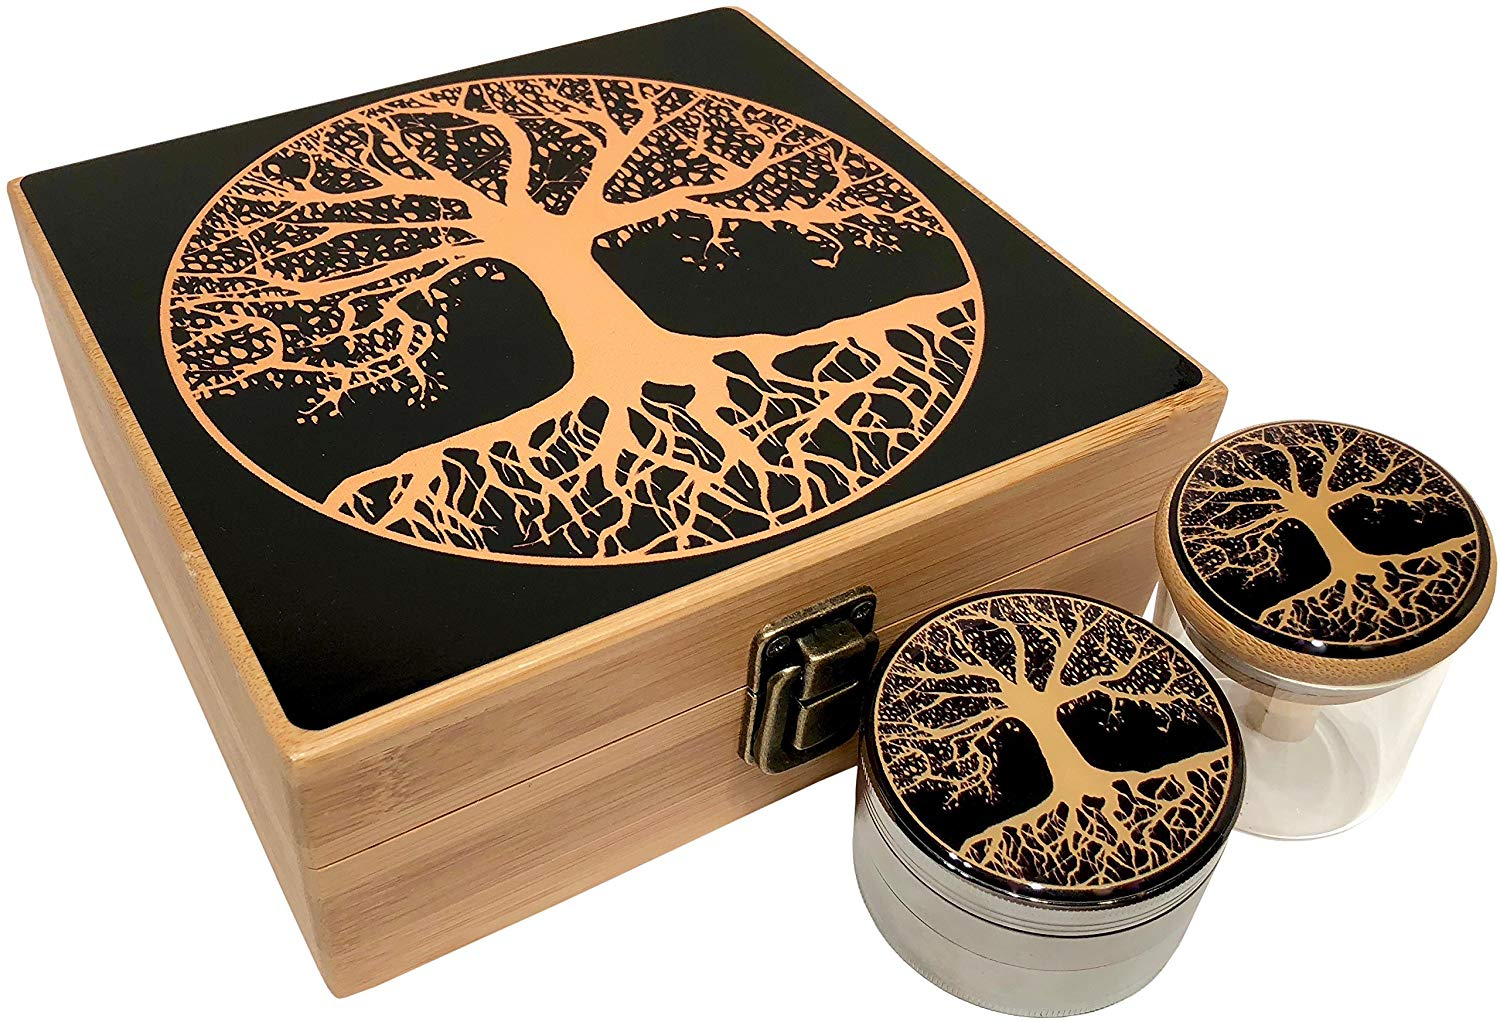 Tree of Life Stash Box Combo - Large 4 Part Herb Grinder with pollen catcher and Stash Jar and Rolling Tray - Wood Stash Boxes (Tree Of Life)